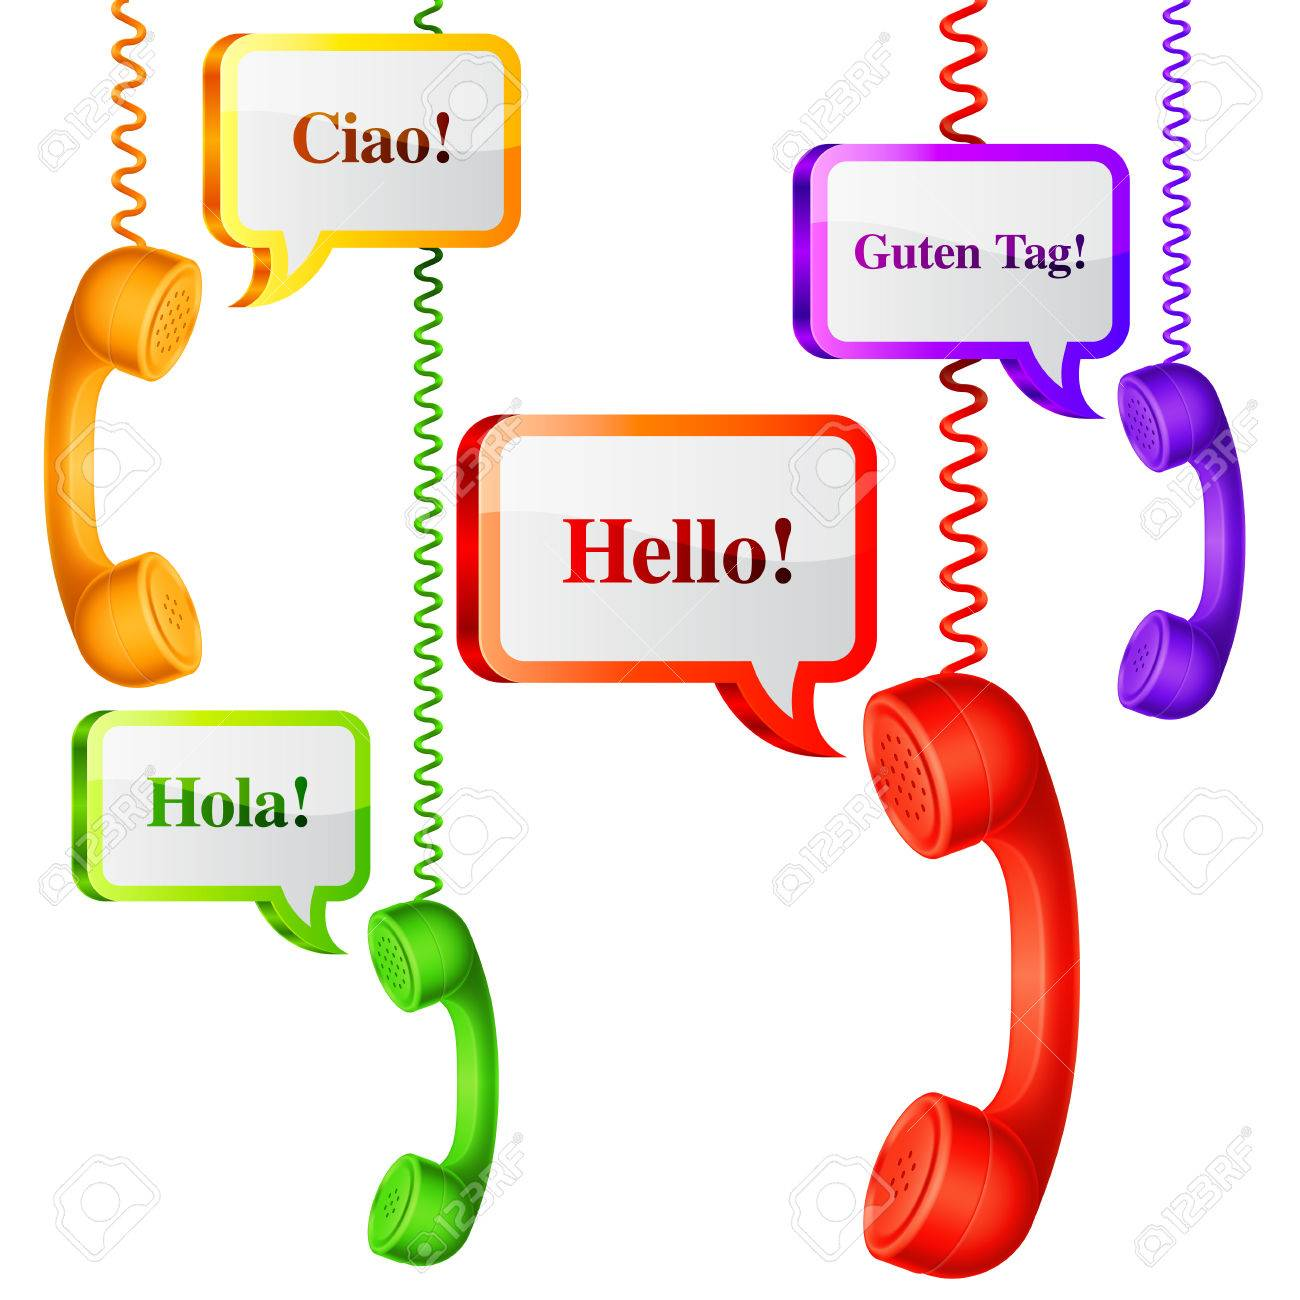 Phone Handset With Hello Speech Bubbles In Different Languages